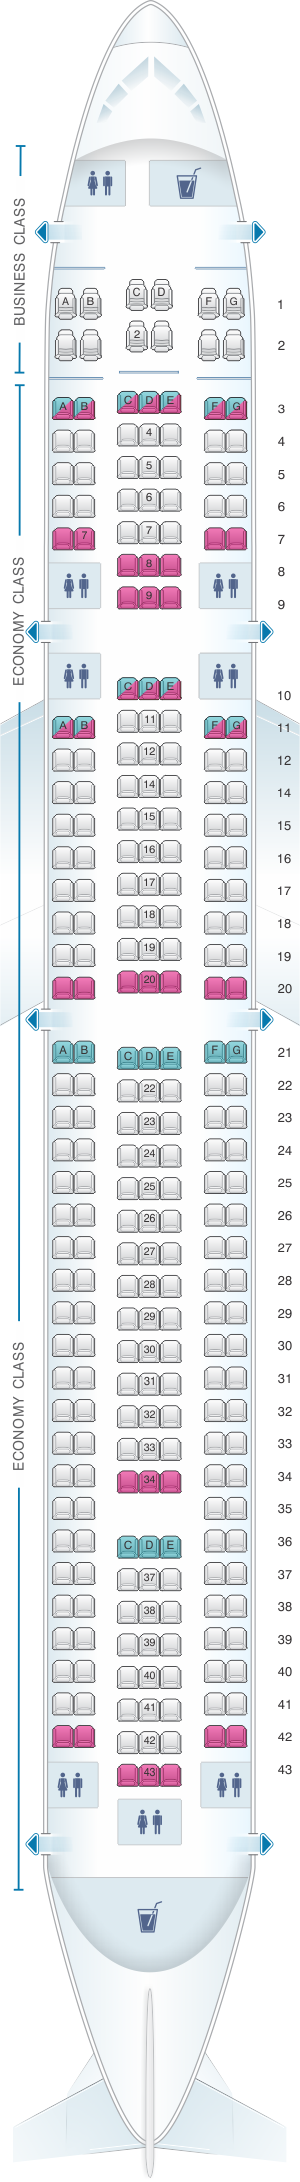 Seat map for Blue Panorama Boeing B767 300ER